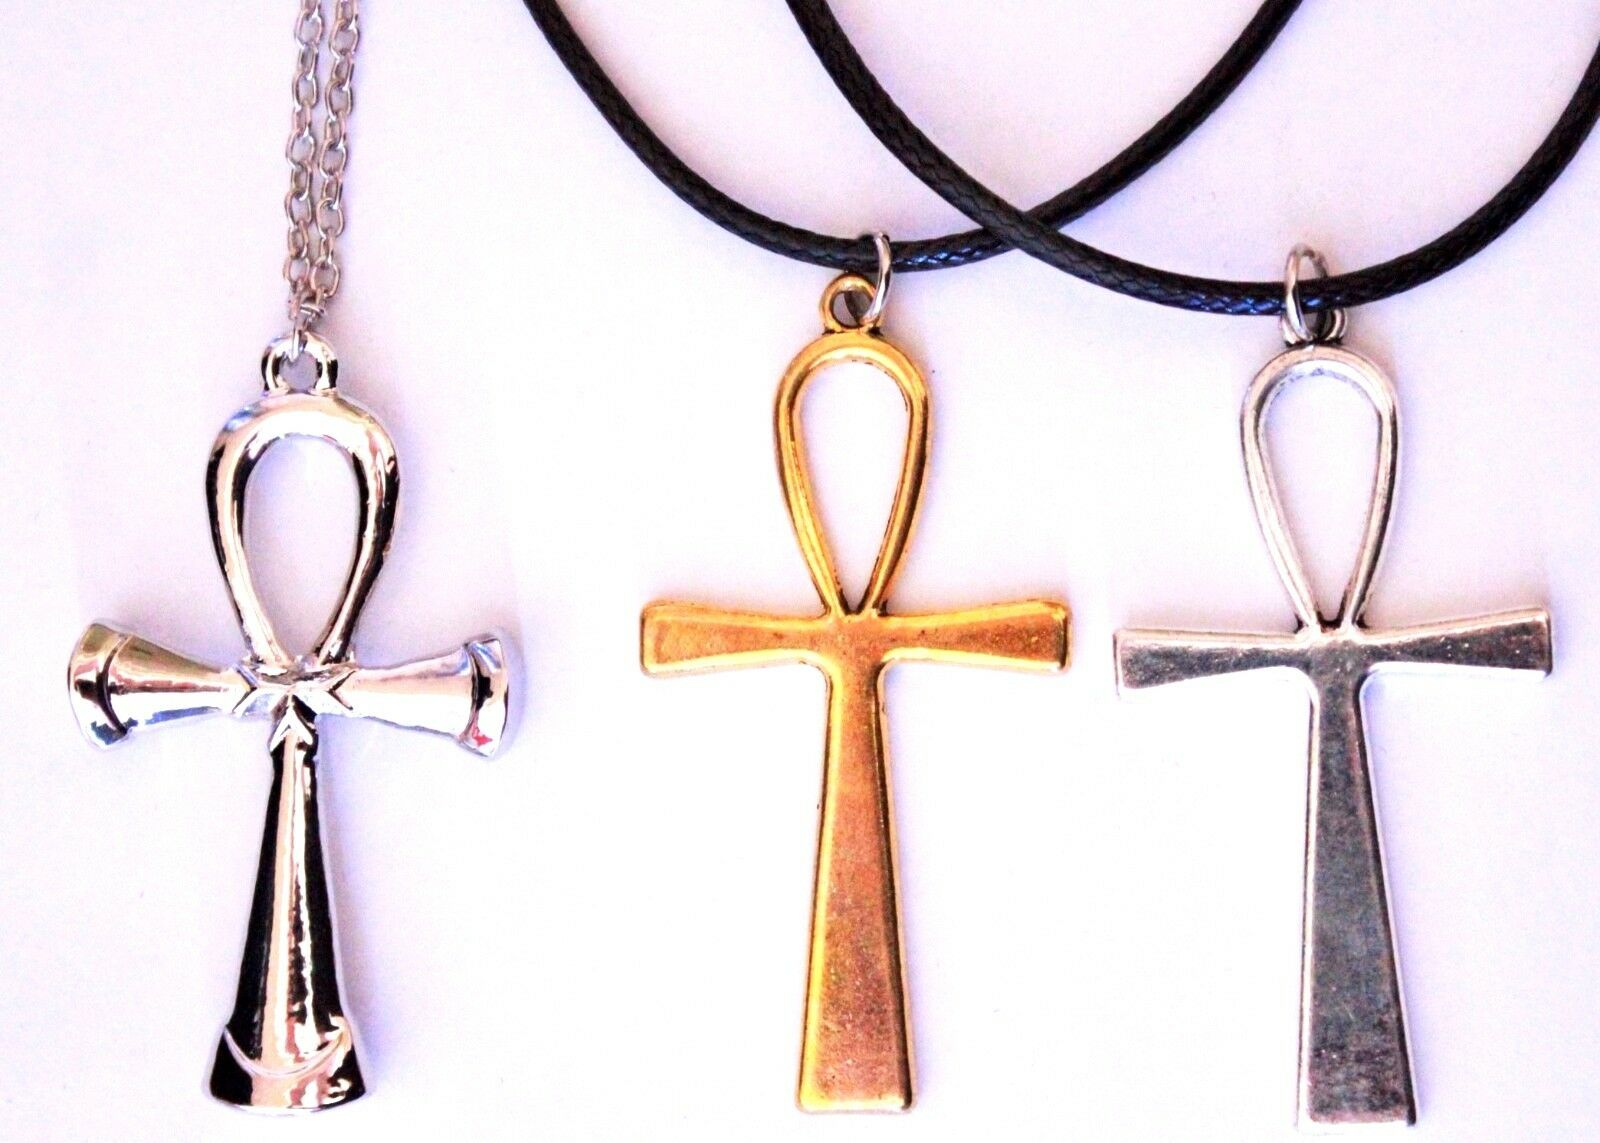 Large Ankh Sign Cross Life Symbol Pendant Gold Silver Ancient